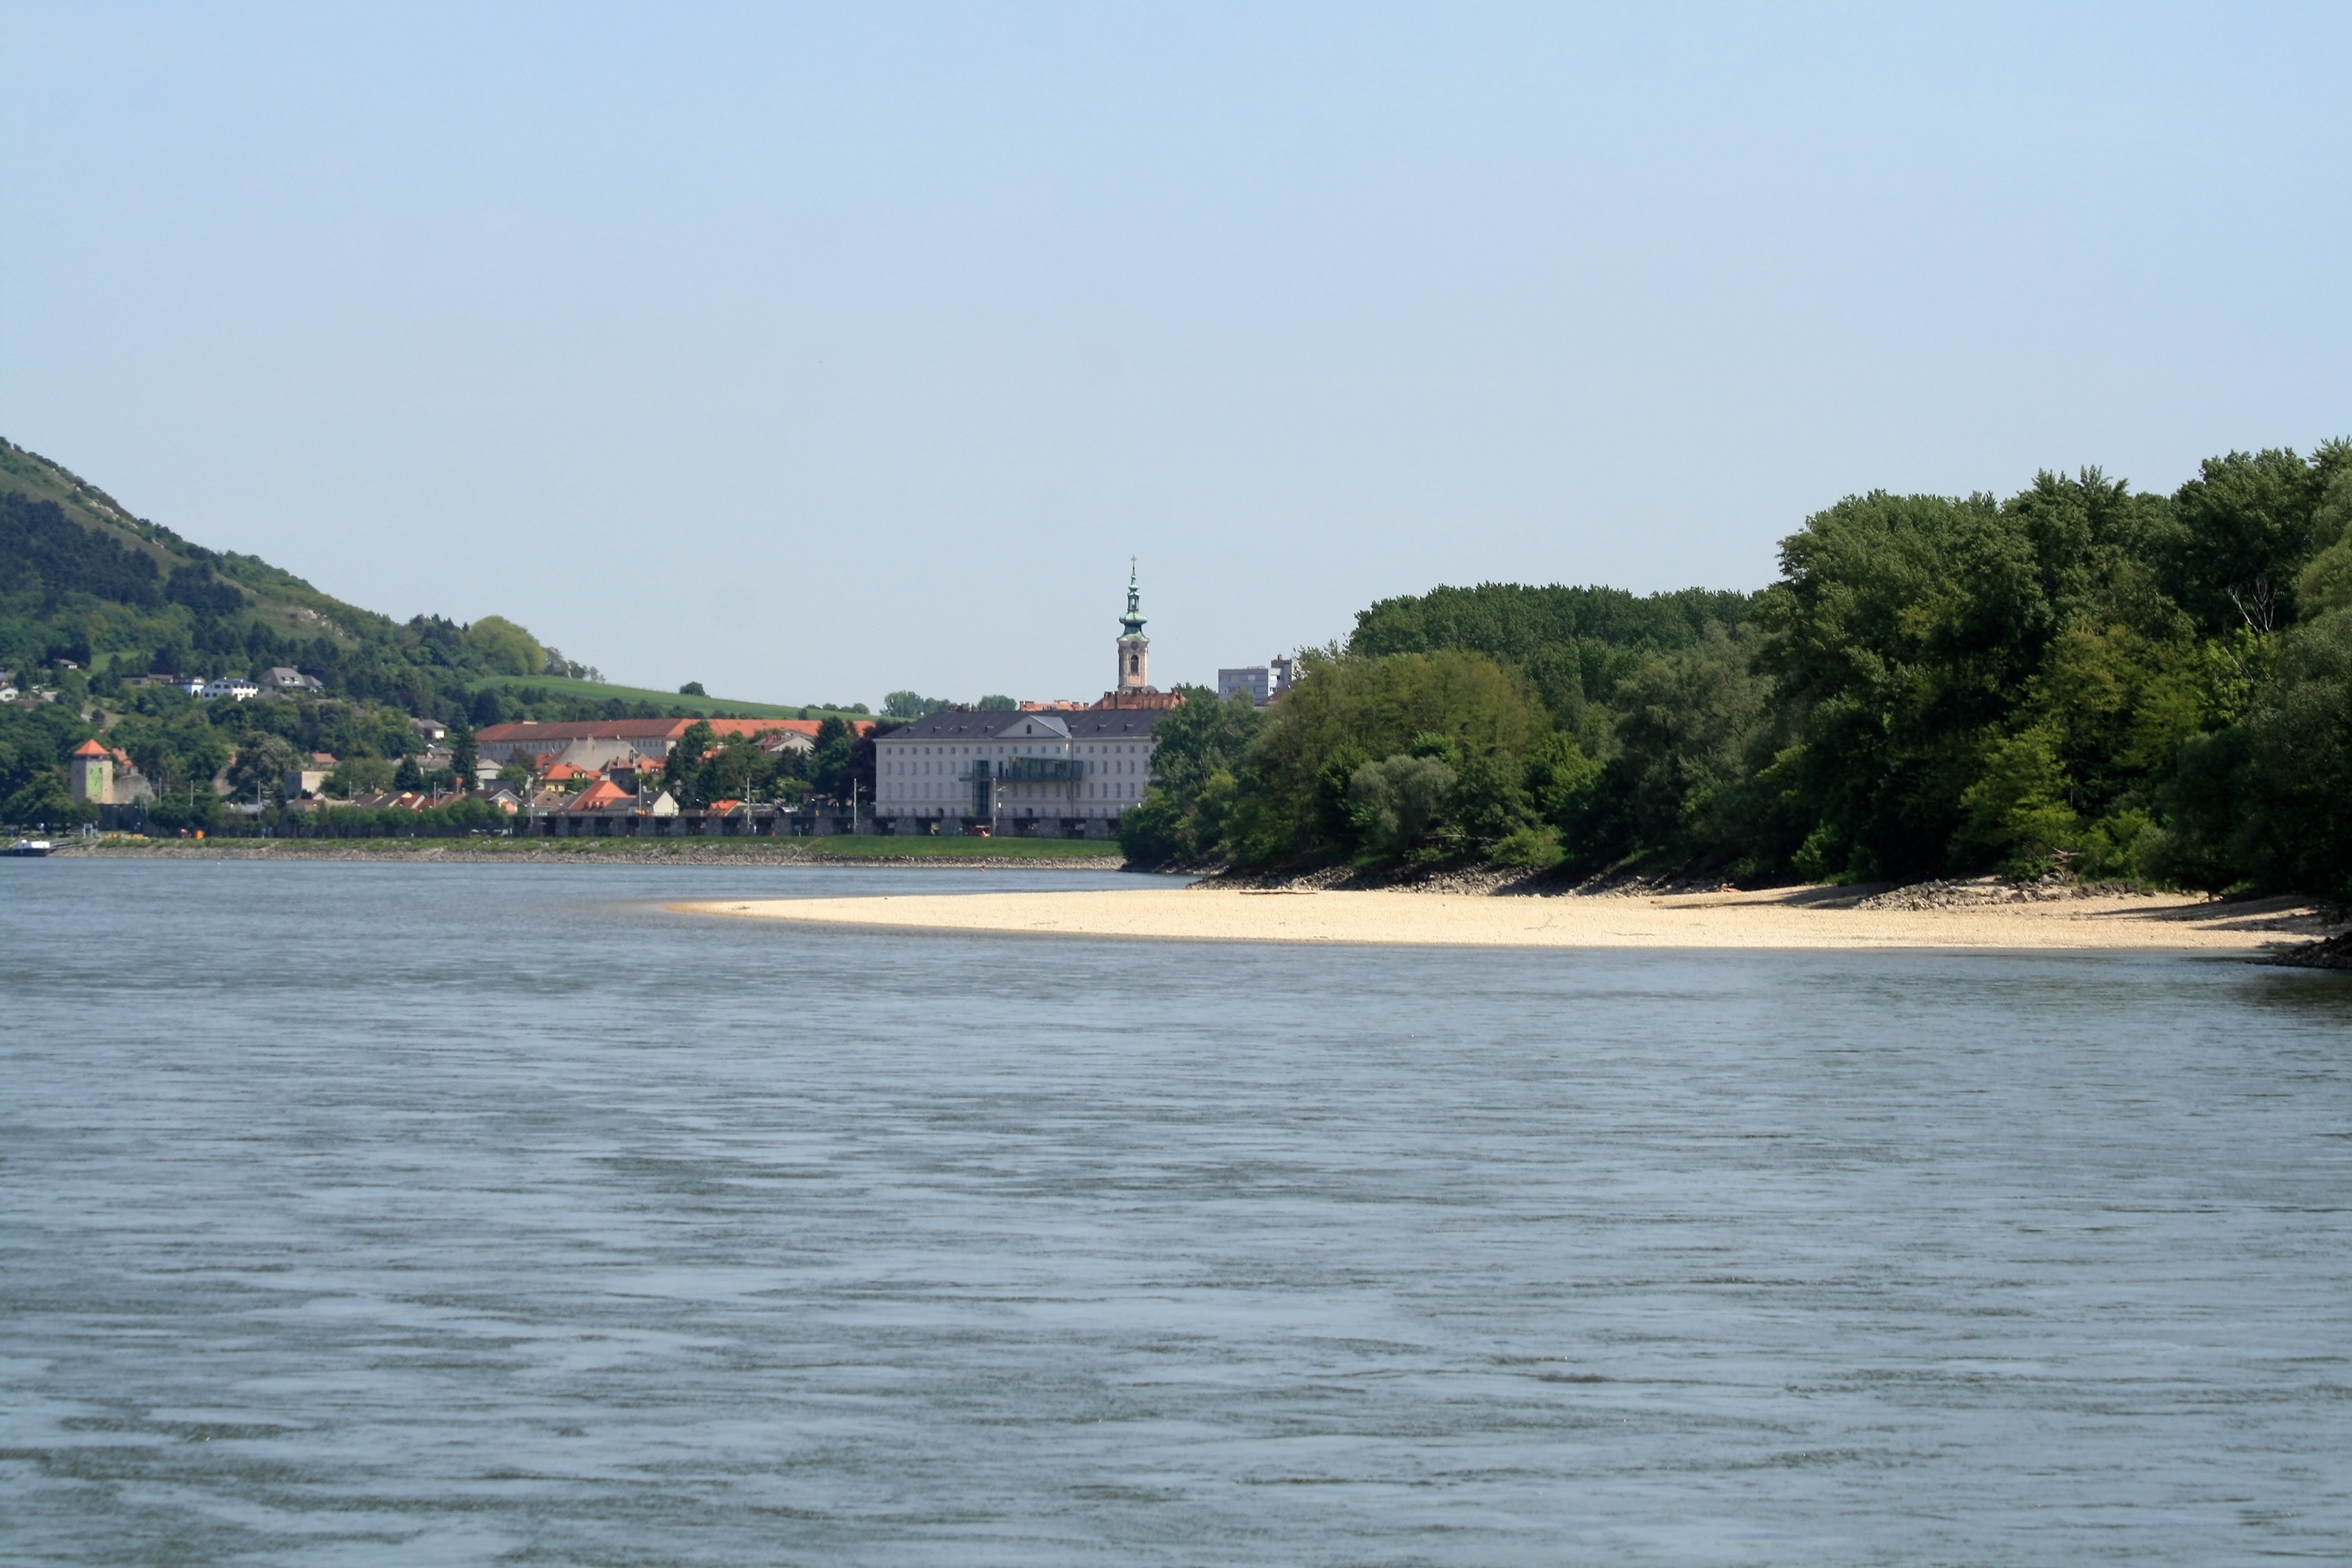 Danube River - Pictures, posters, news and videos on your ...